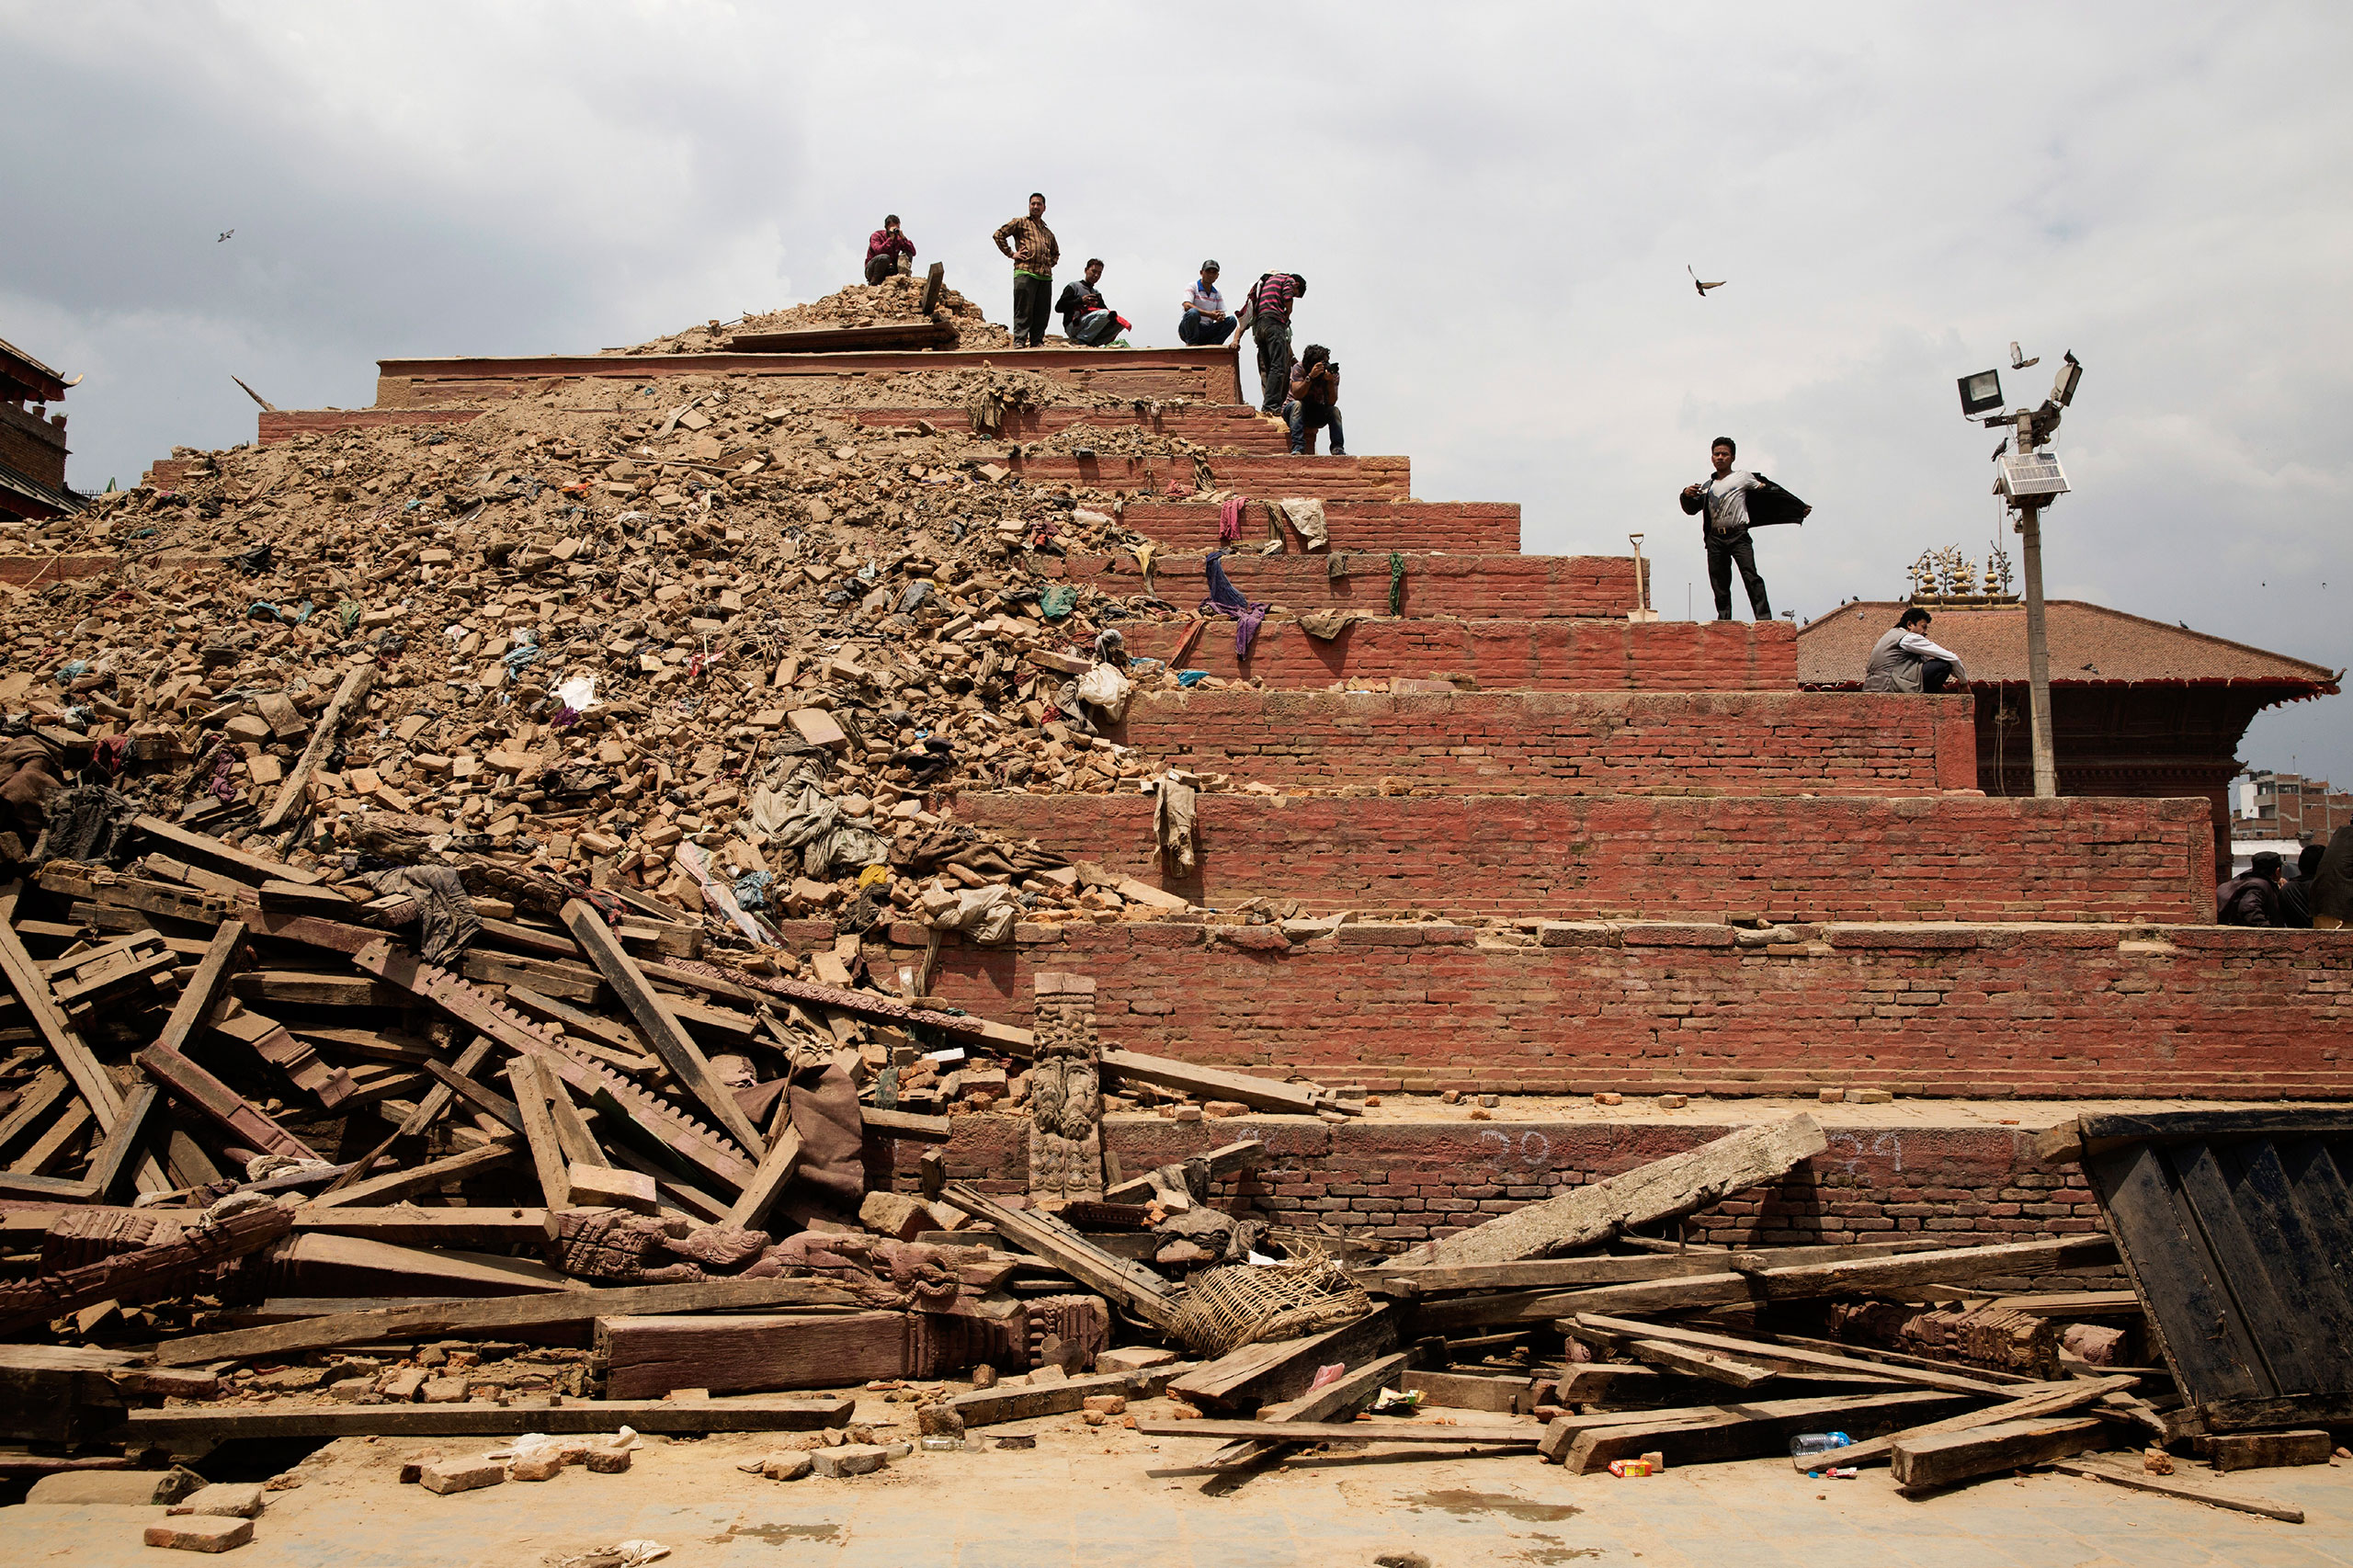 People stand on top of a damaged building in Durbar Square in Kathmandu, April 26, 2015. The historic Durbar Square, a UNESCO world heritage site, was severely damaged in the earthquake.From  Witness the Aftermath of Nepal's Devastating Earthquake